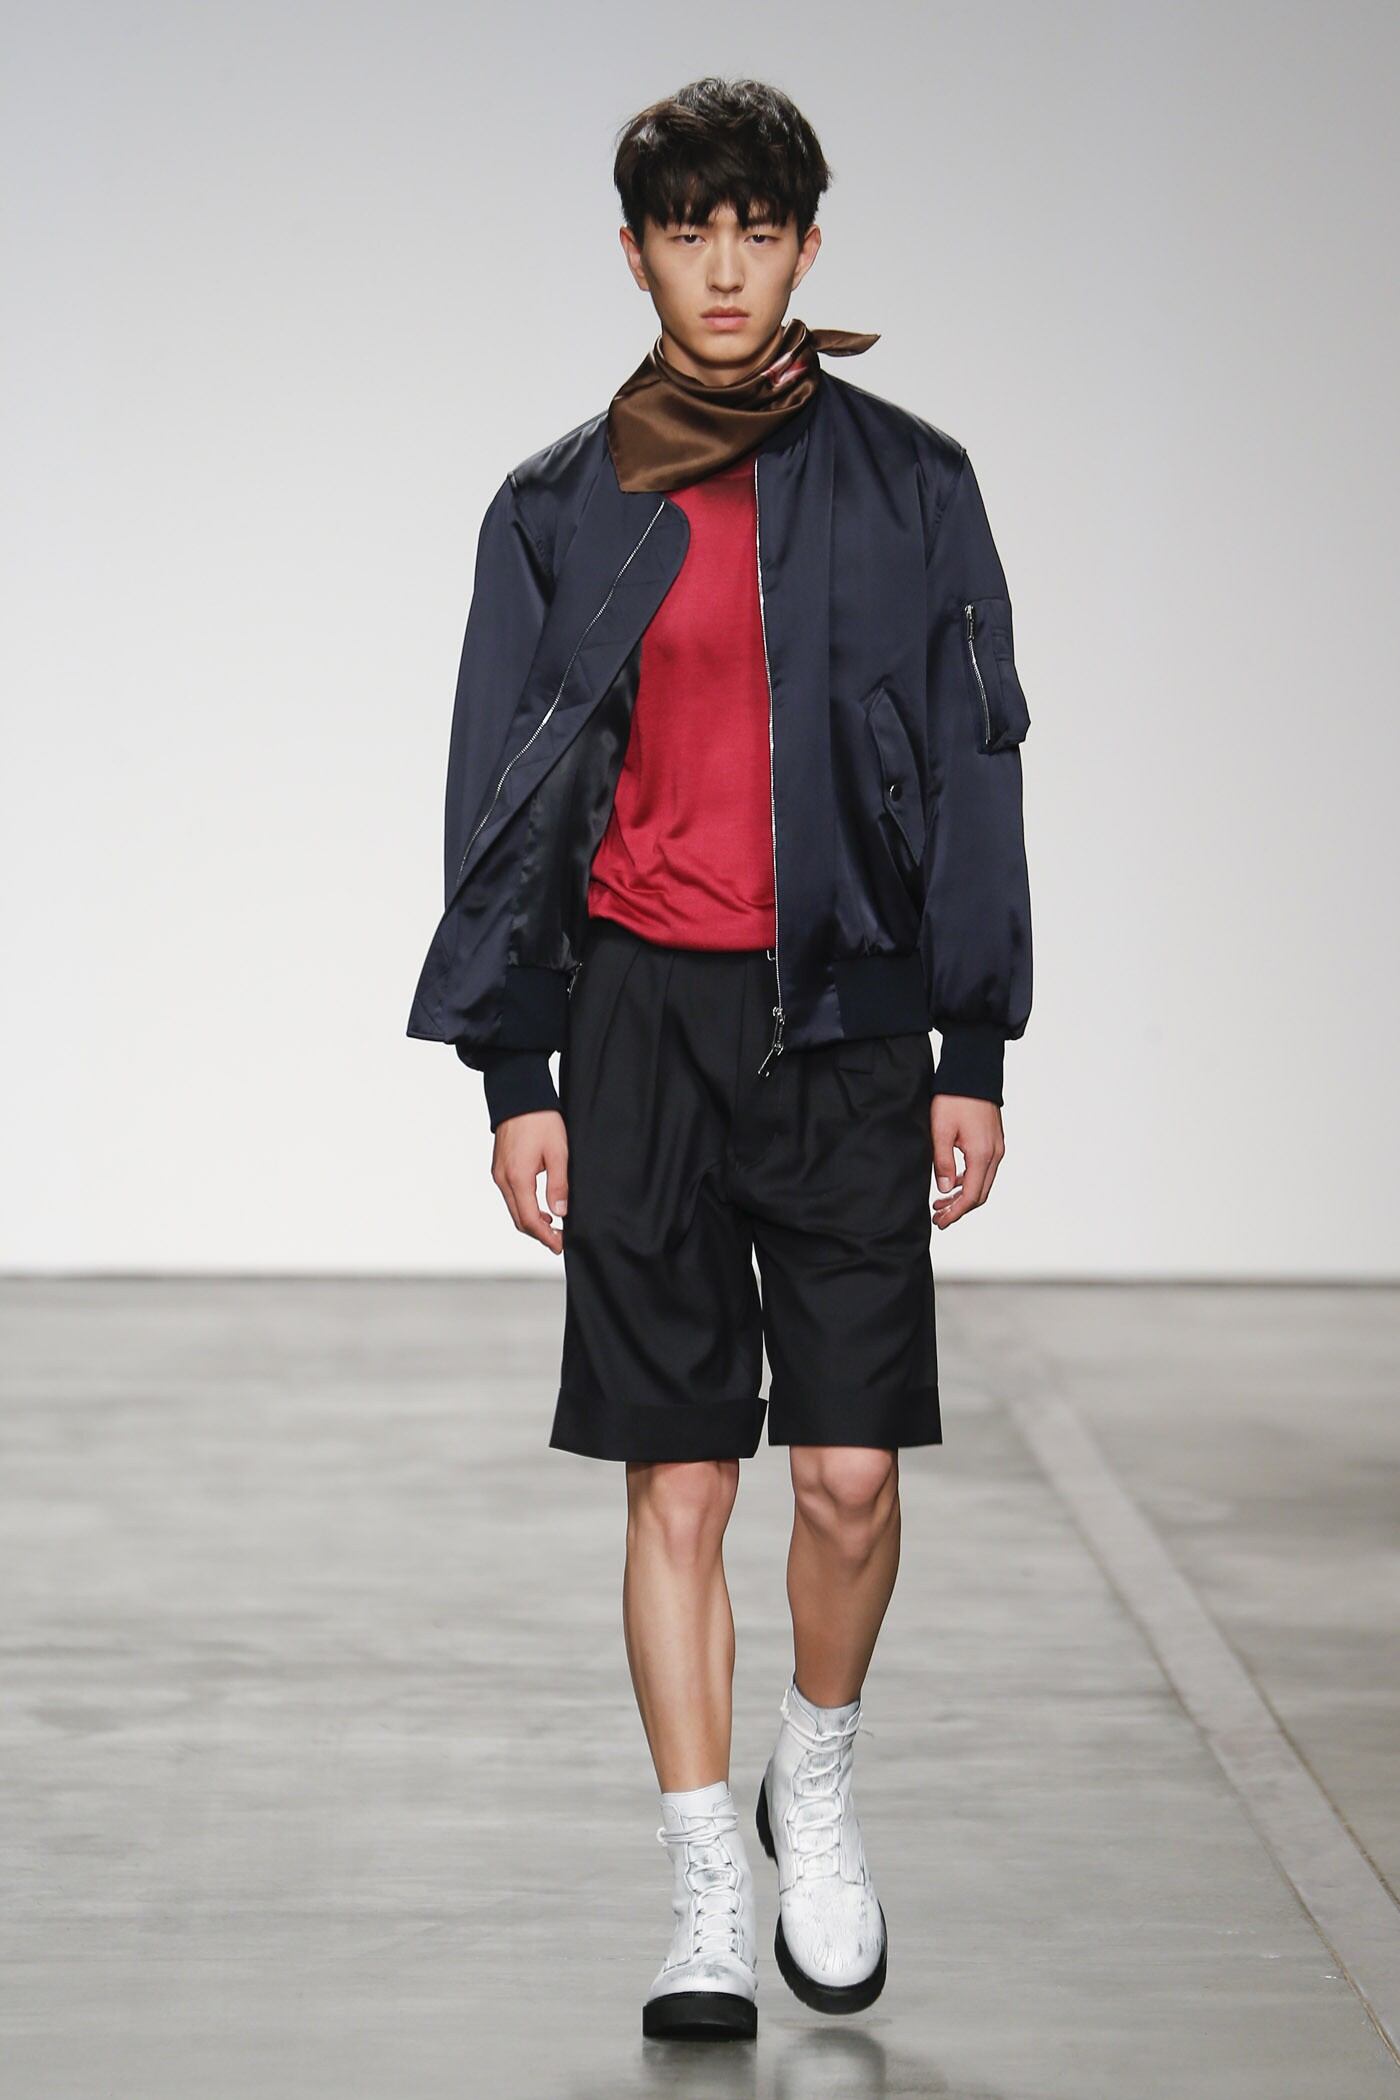 Iceberg Men's Collection 2015